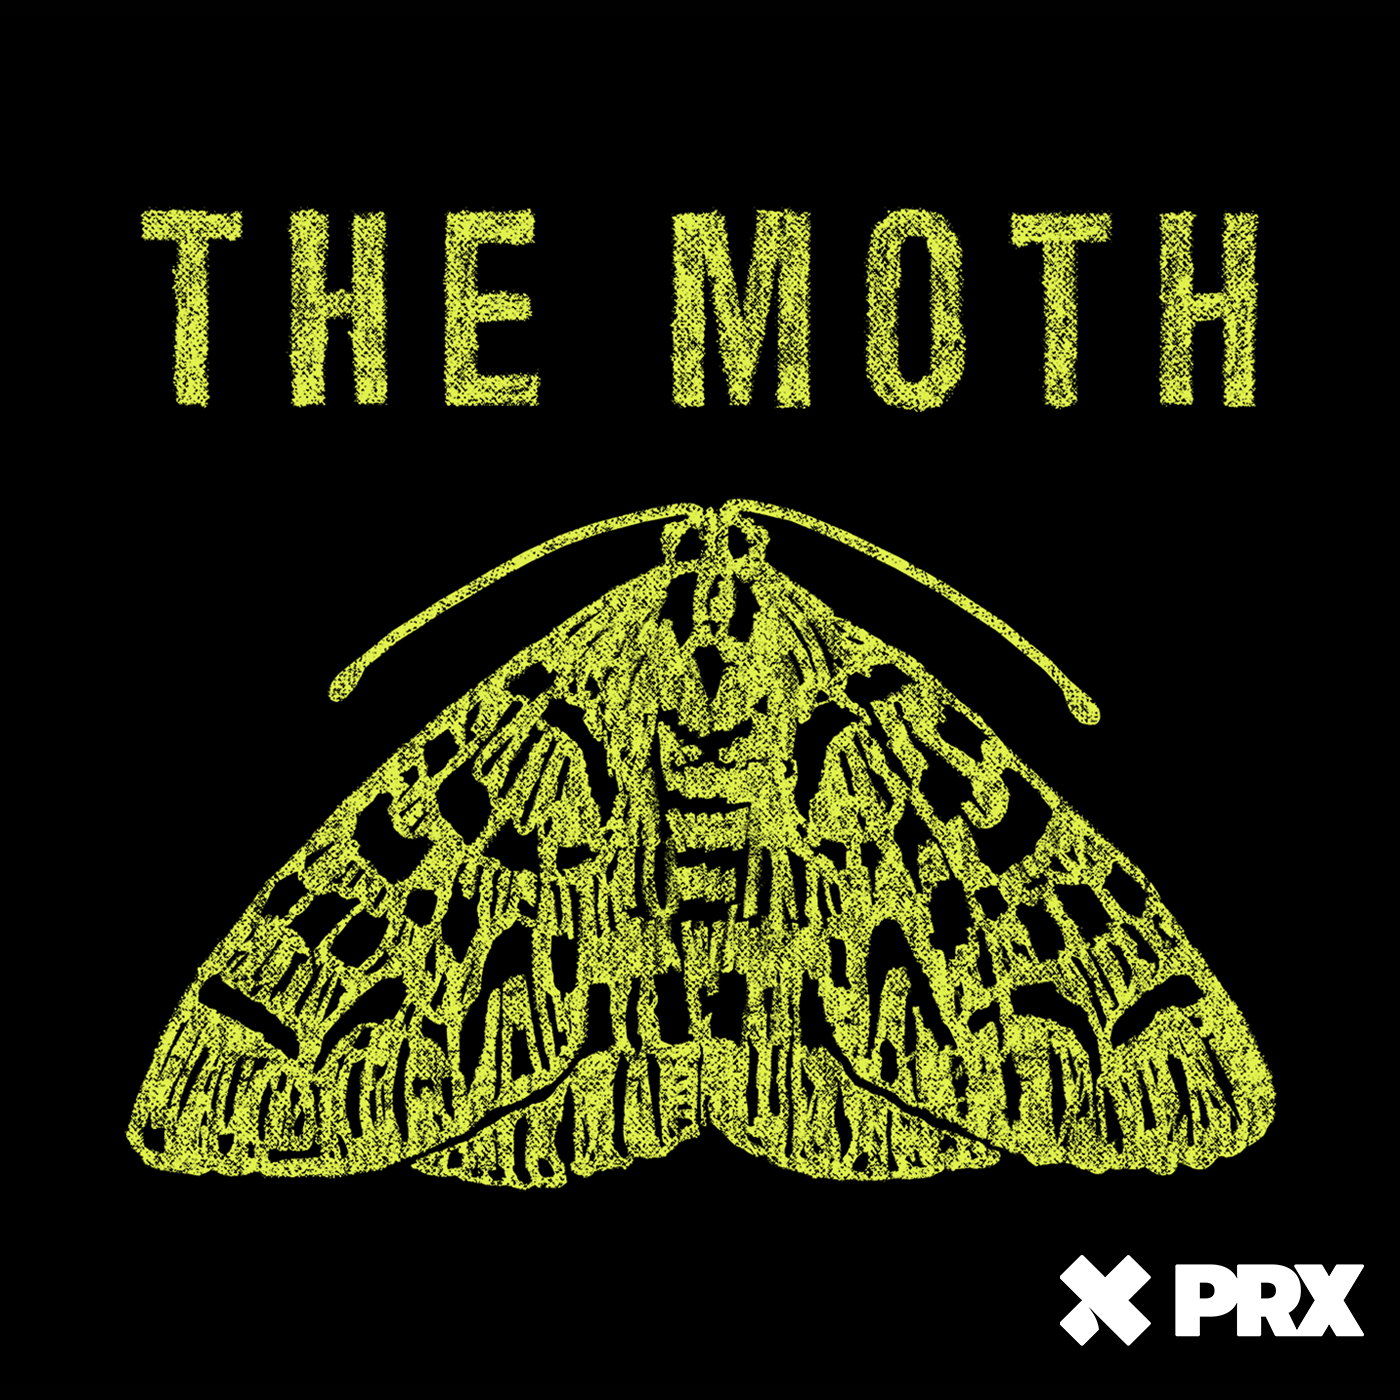 The Moth Radio Hour: Hitchhiking, Mosh Pit, and Iggy Pop